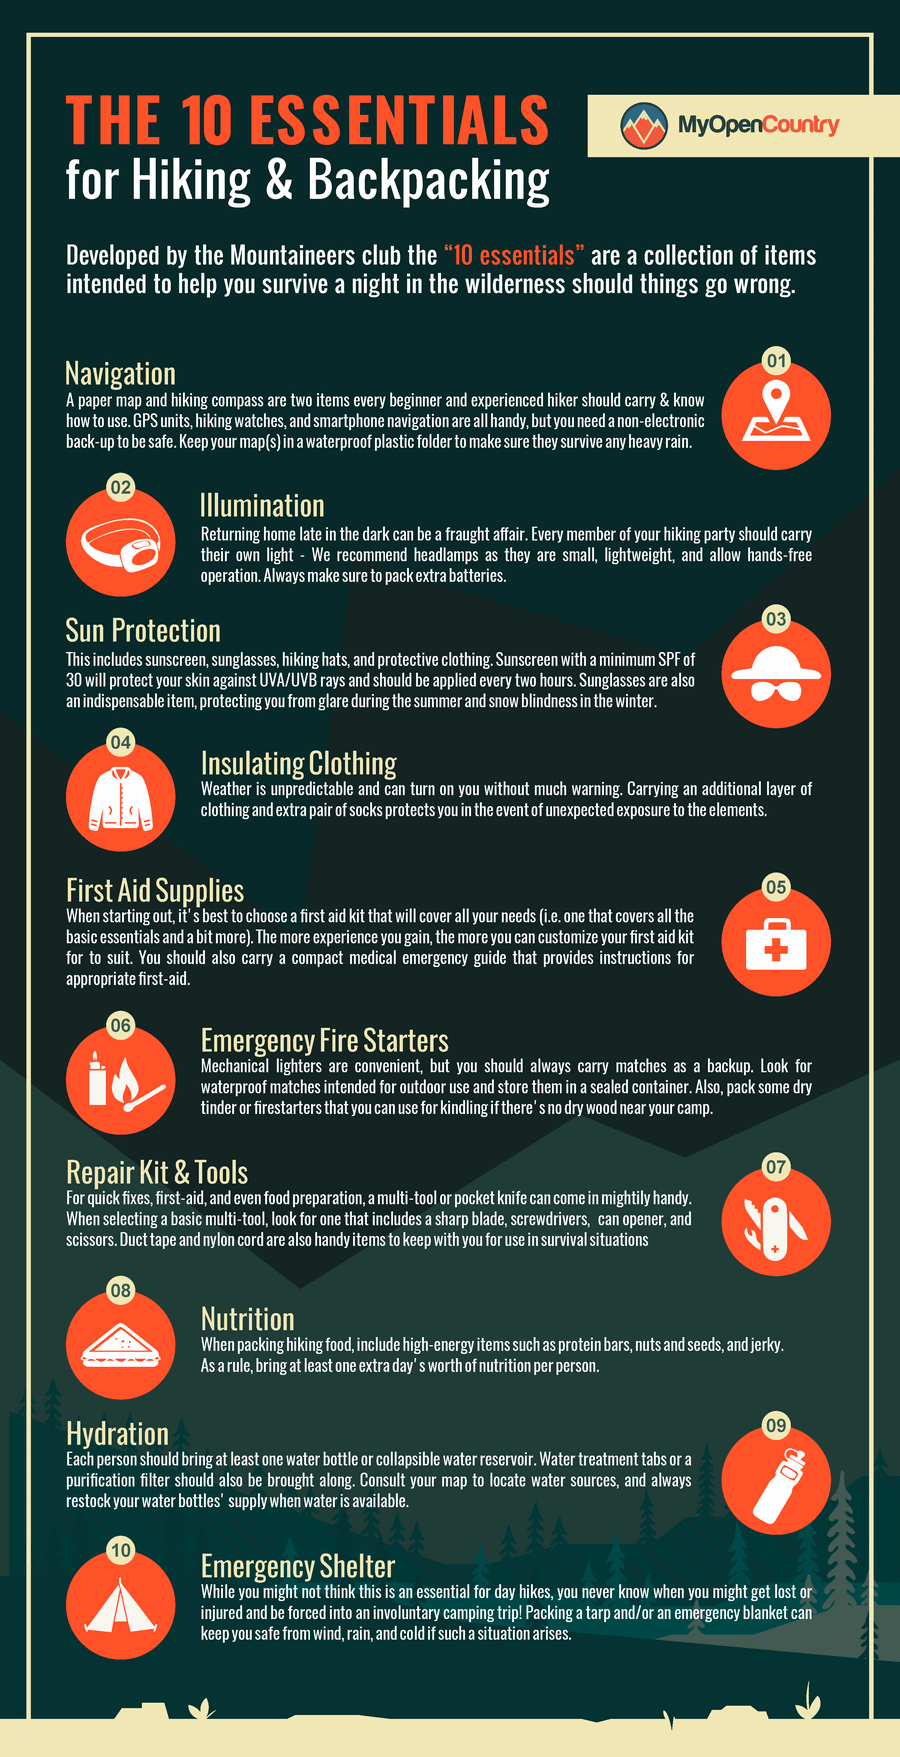 The 10 Essentials for hiking or backpacking infographic